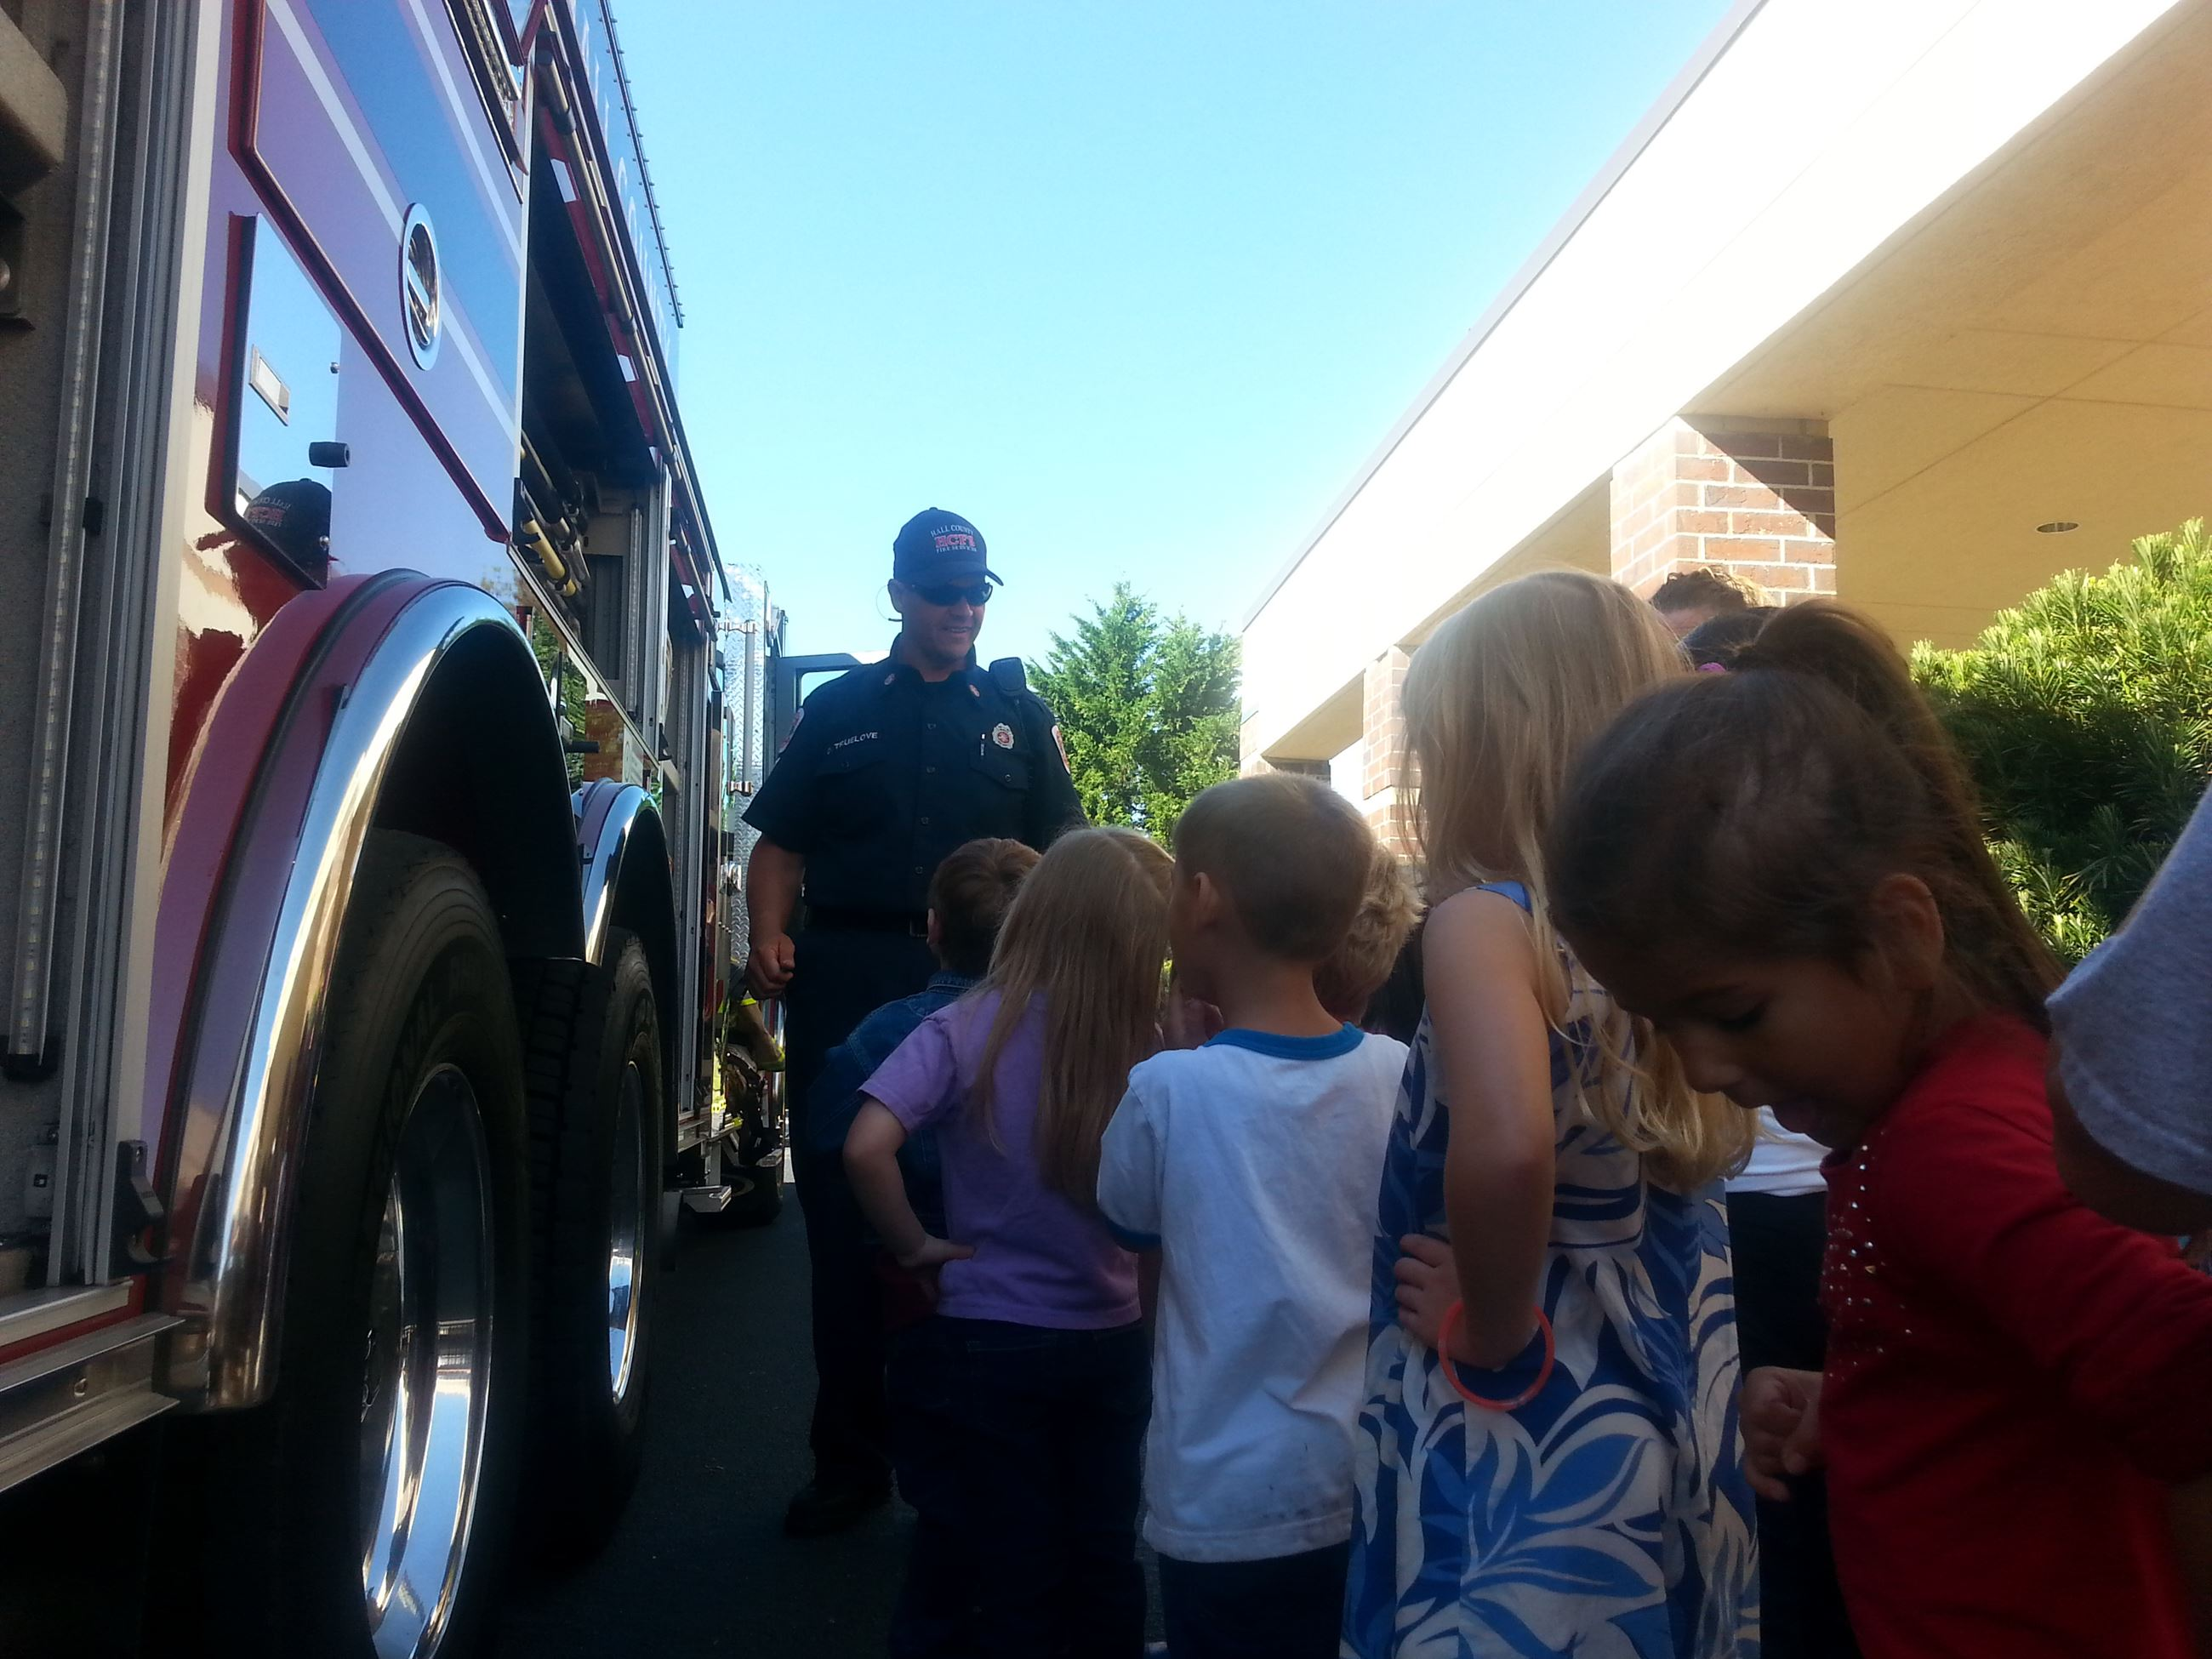 Station 16 (B-shift) at Mount Vernon Elementary